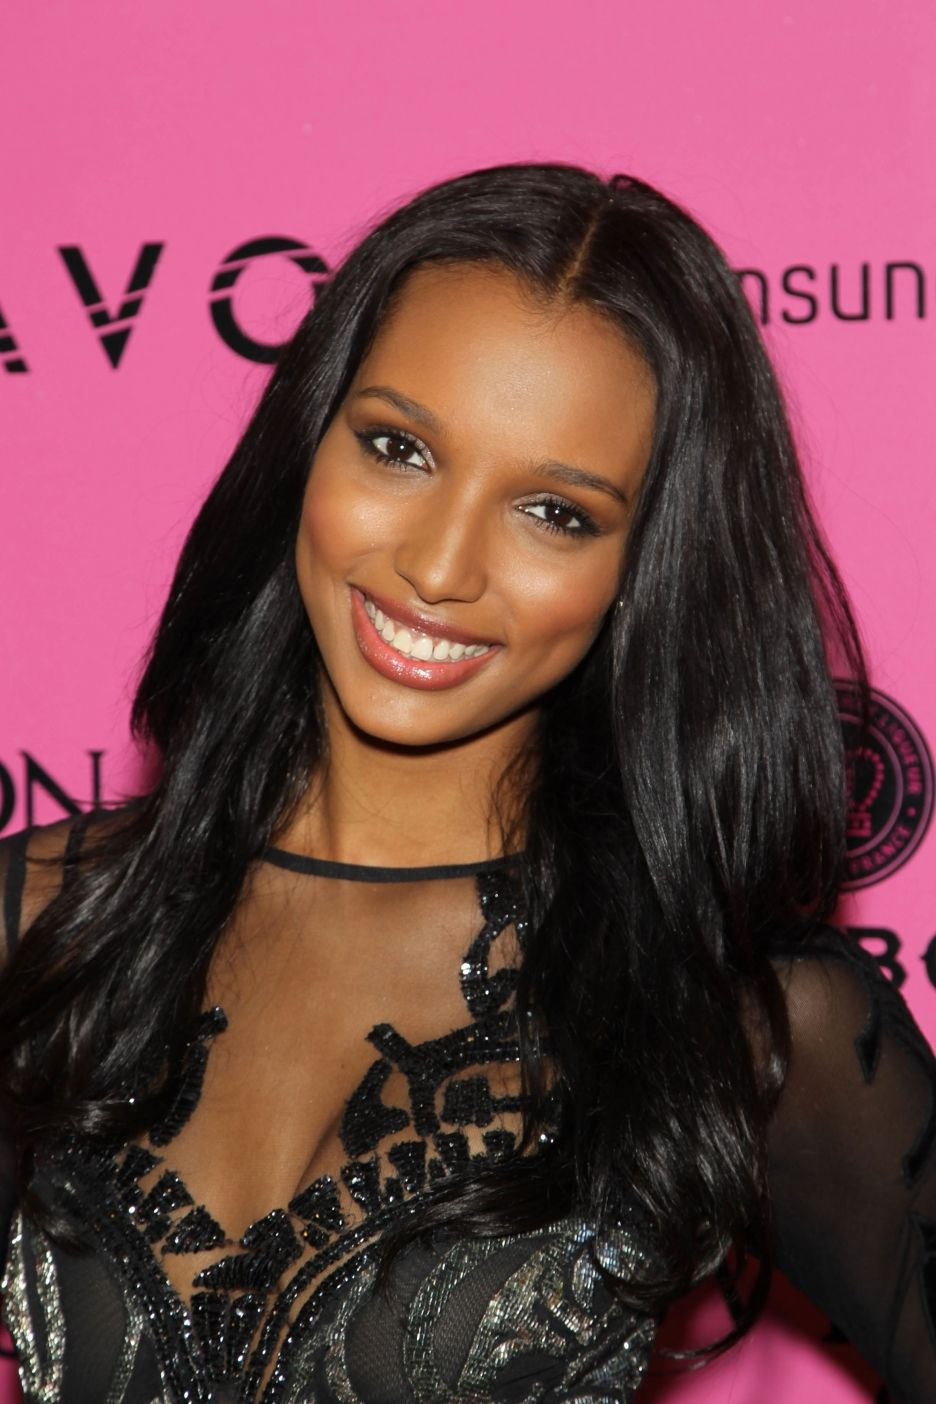 Jasmine Tookes earned a  million dollar salary, leaving the net worth at 0.5 million in 2017